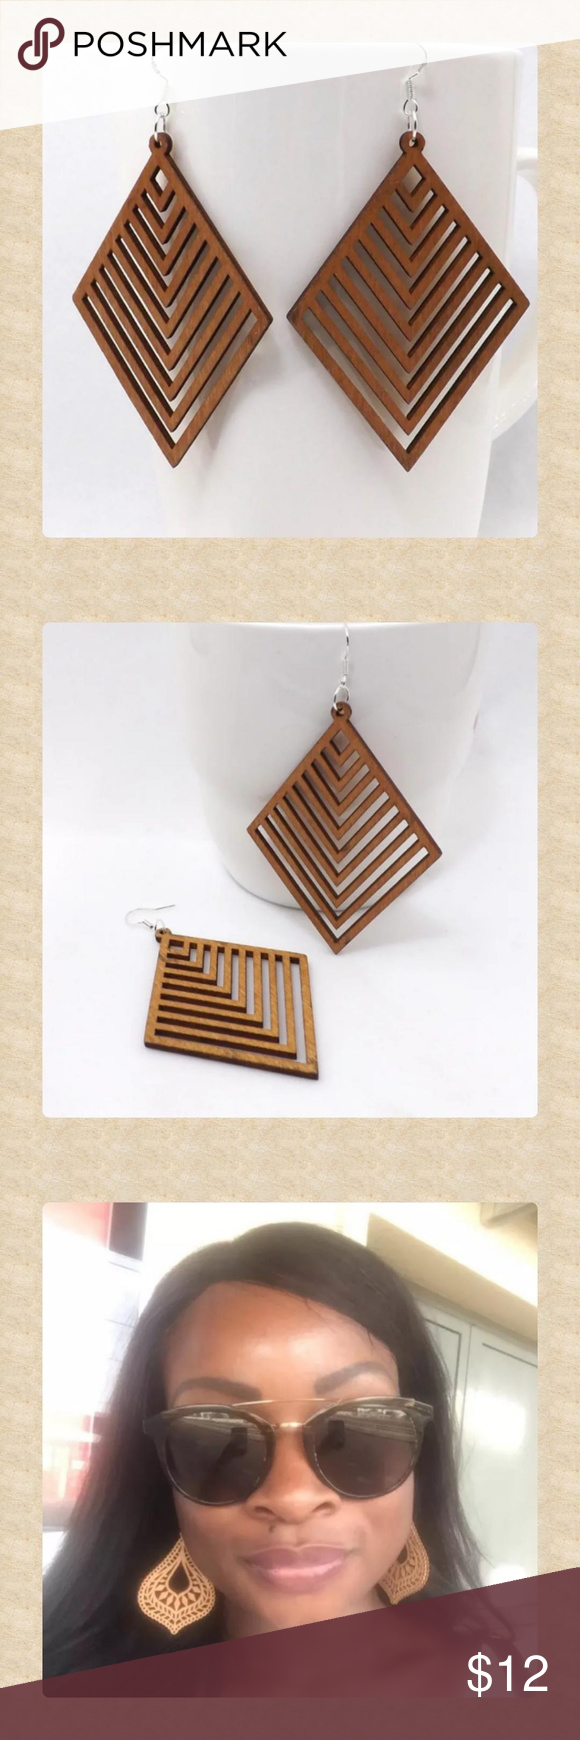 Wood, Cut-out, Geometric, Dangle Earrings! Lovely cut-out, wooden, dangle earrings with lovely geometric design! Great for fall with a chunky sweater!  Exact measurements will be posted soon!  Last photo shown to illustrate size (which is very similar).  boho, global, geometric, chevron, diamond, trendy, statement, natural,  casual, summer, spring, summer, fall, 2018, 2018 Jewelry Earrings